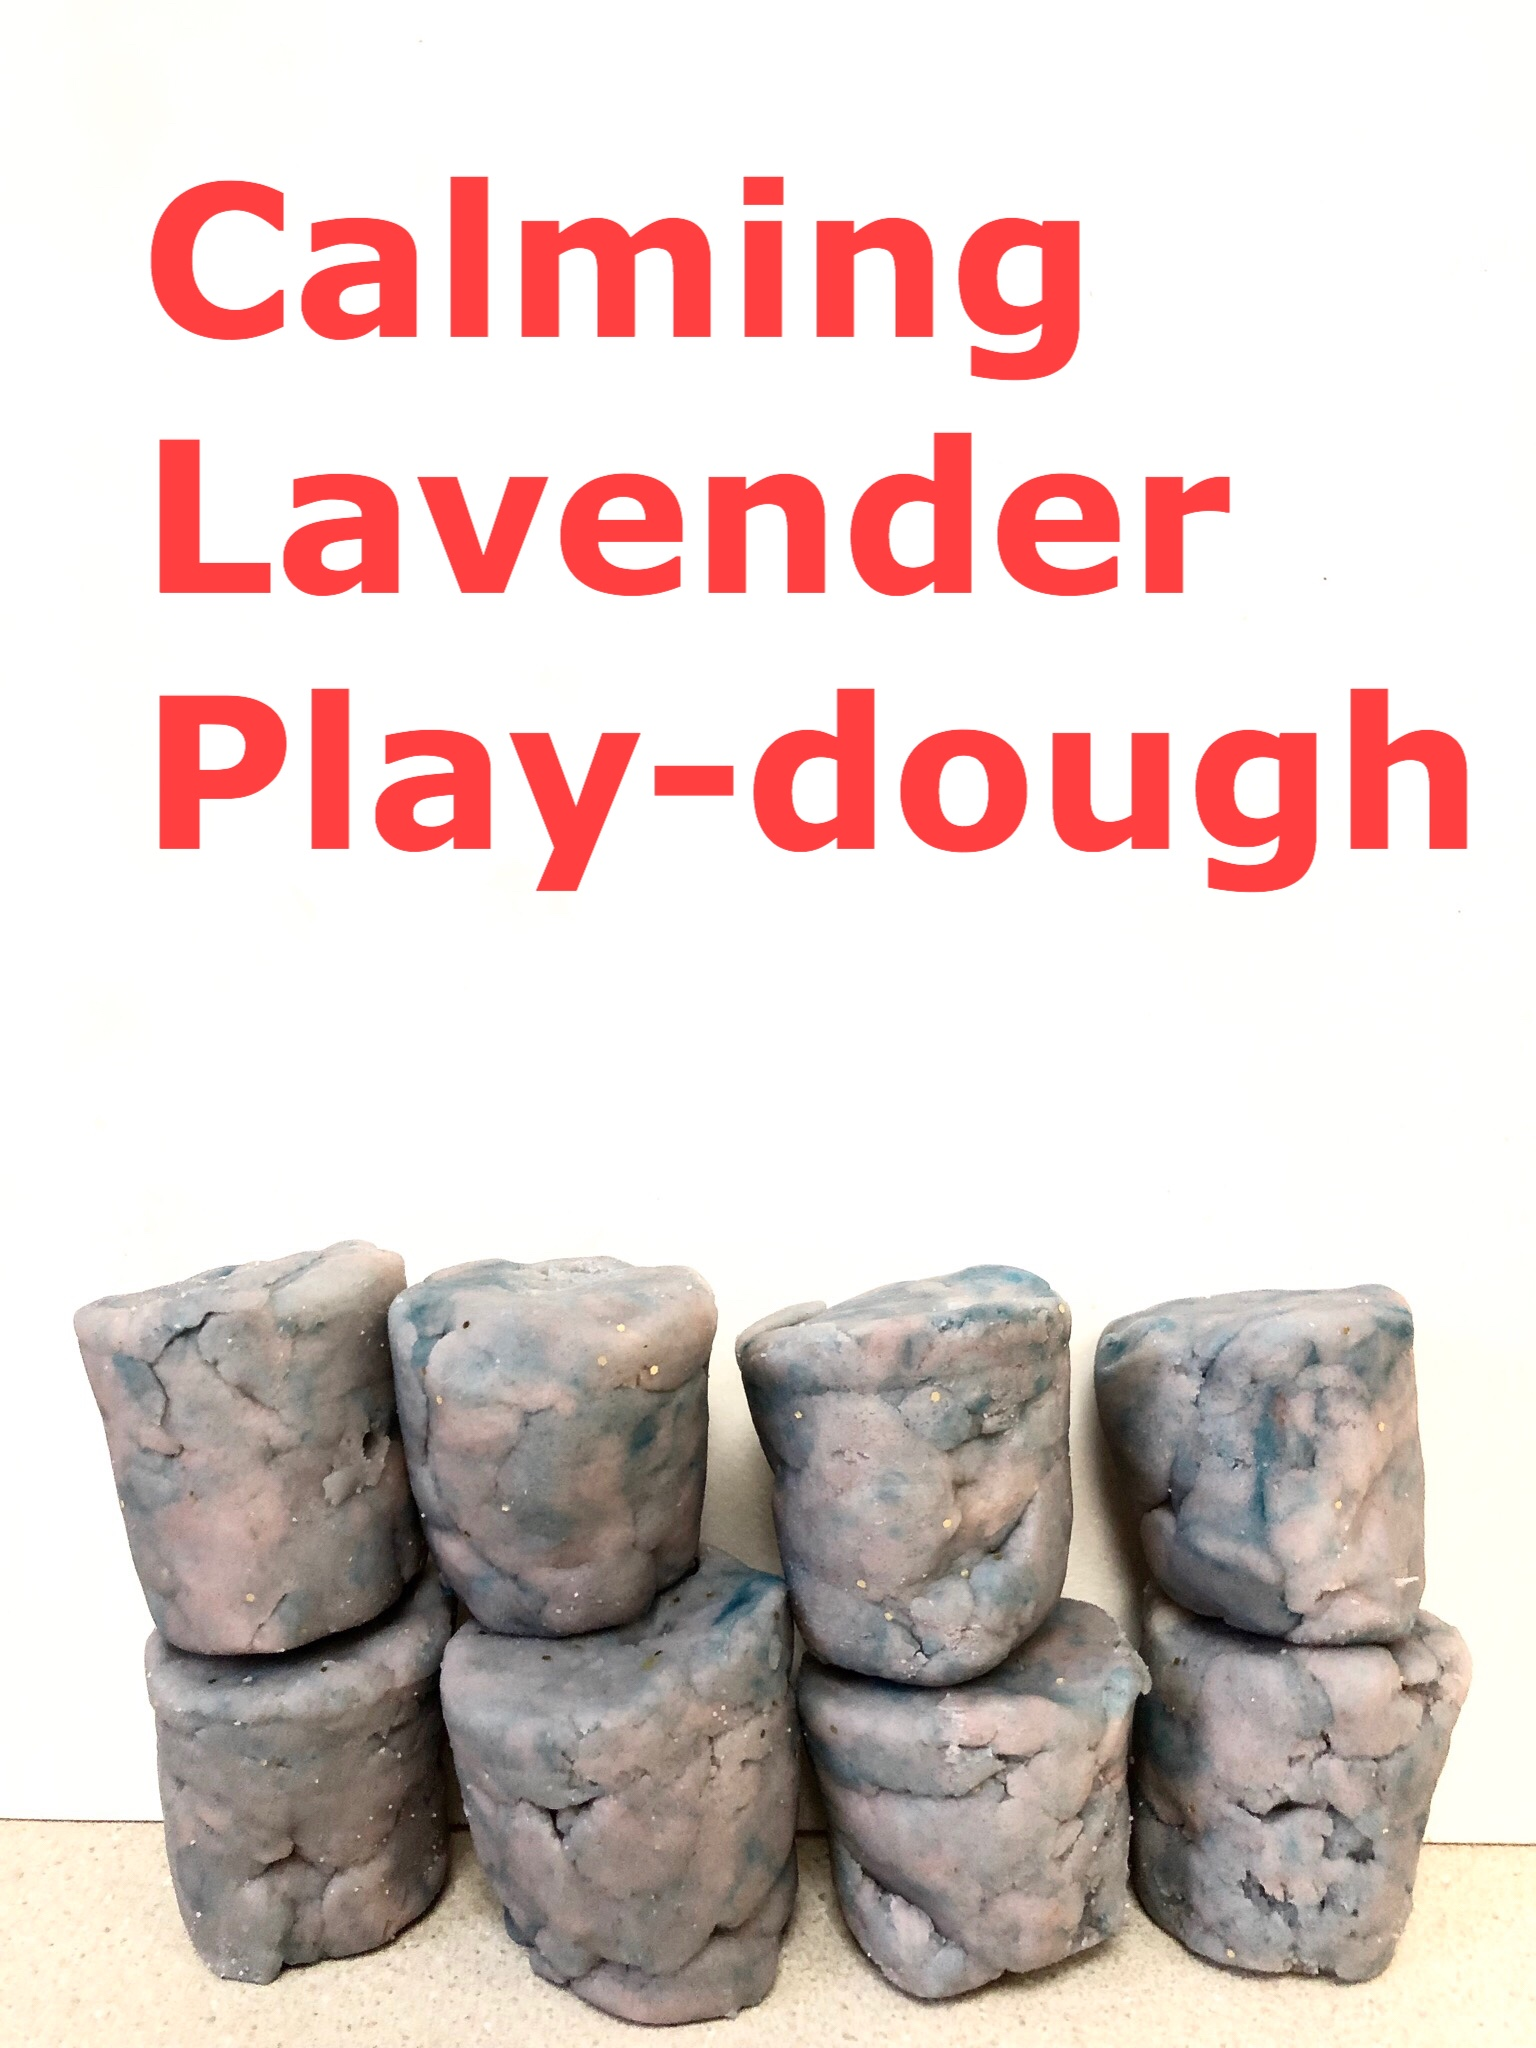 Calming lavender play-dough pin